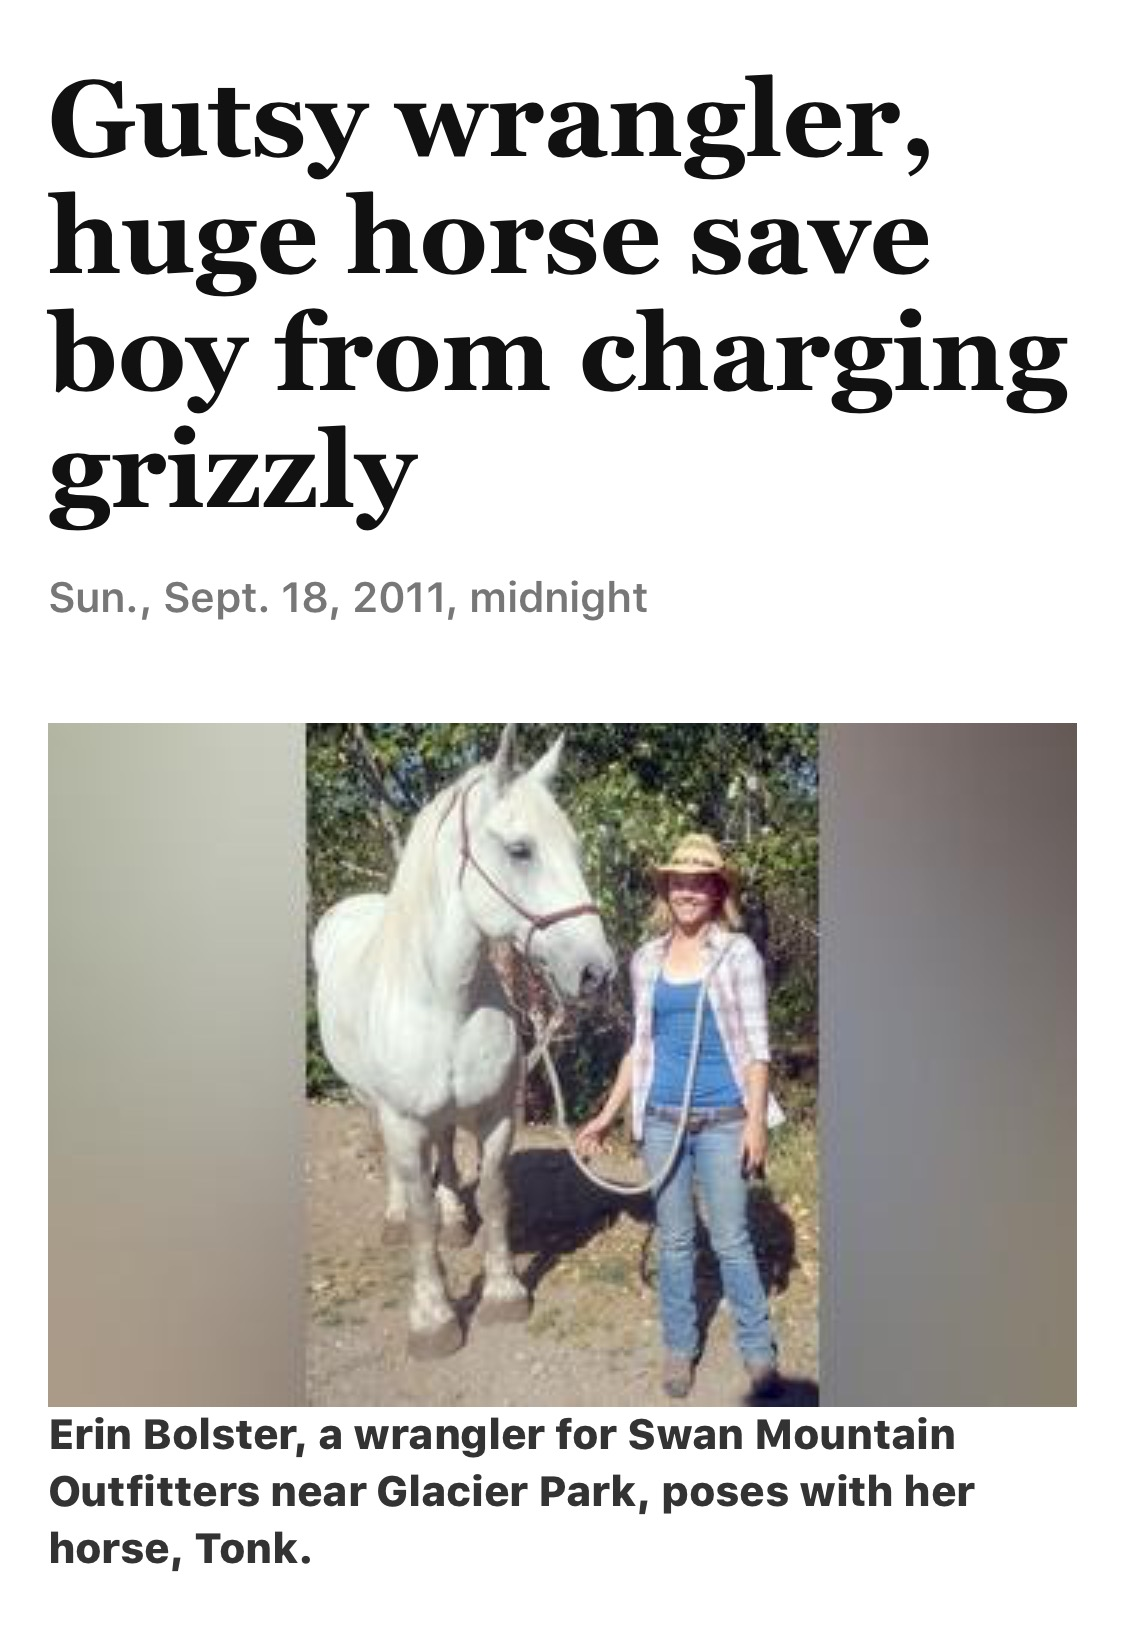 Gutsy wrangler, huge horse save boy from charging grizzly | The Spokesman-Review 110 Views